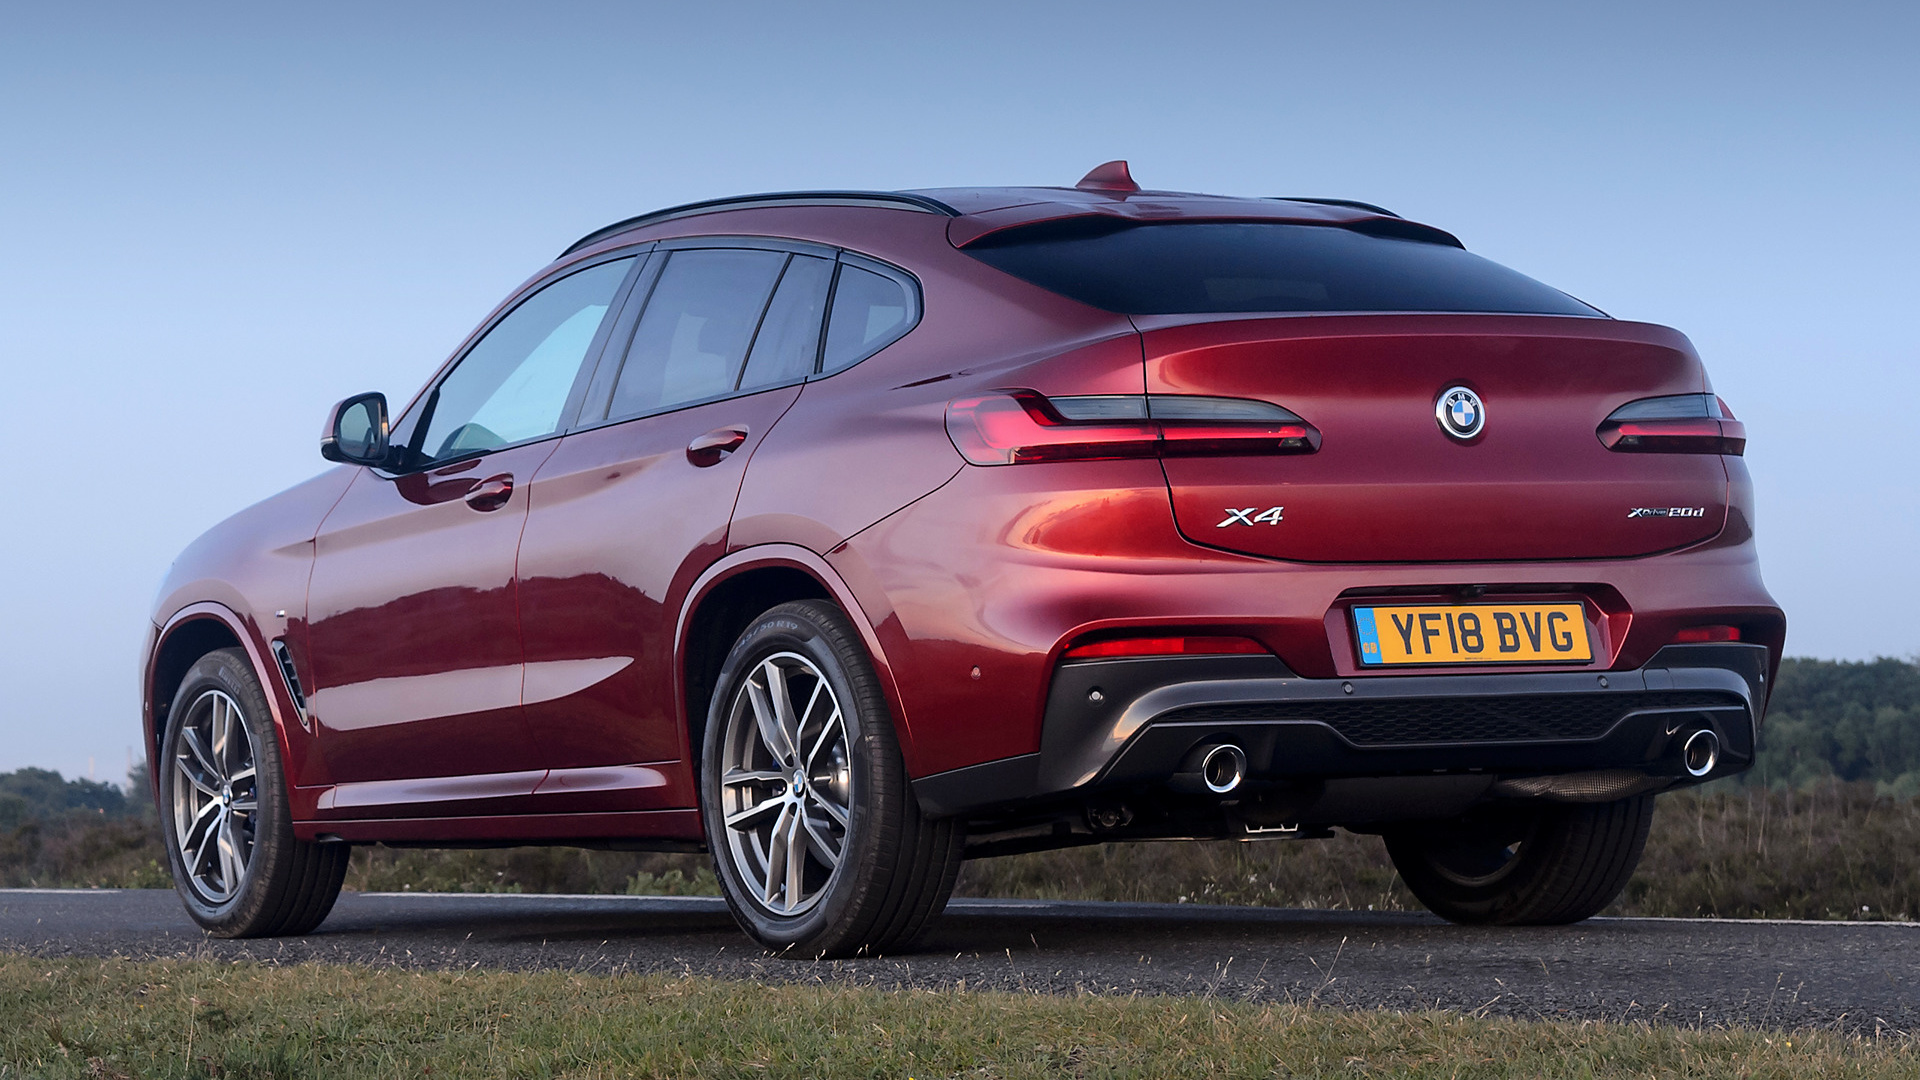 1920x1080 - BMW X4 Wallpapers 25